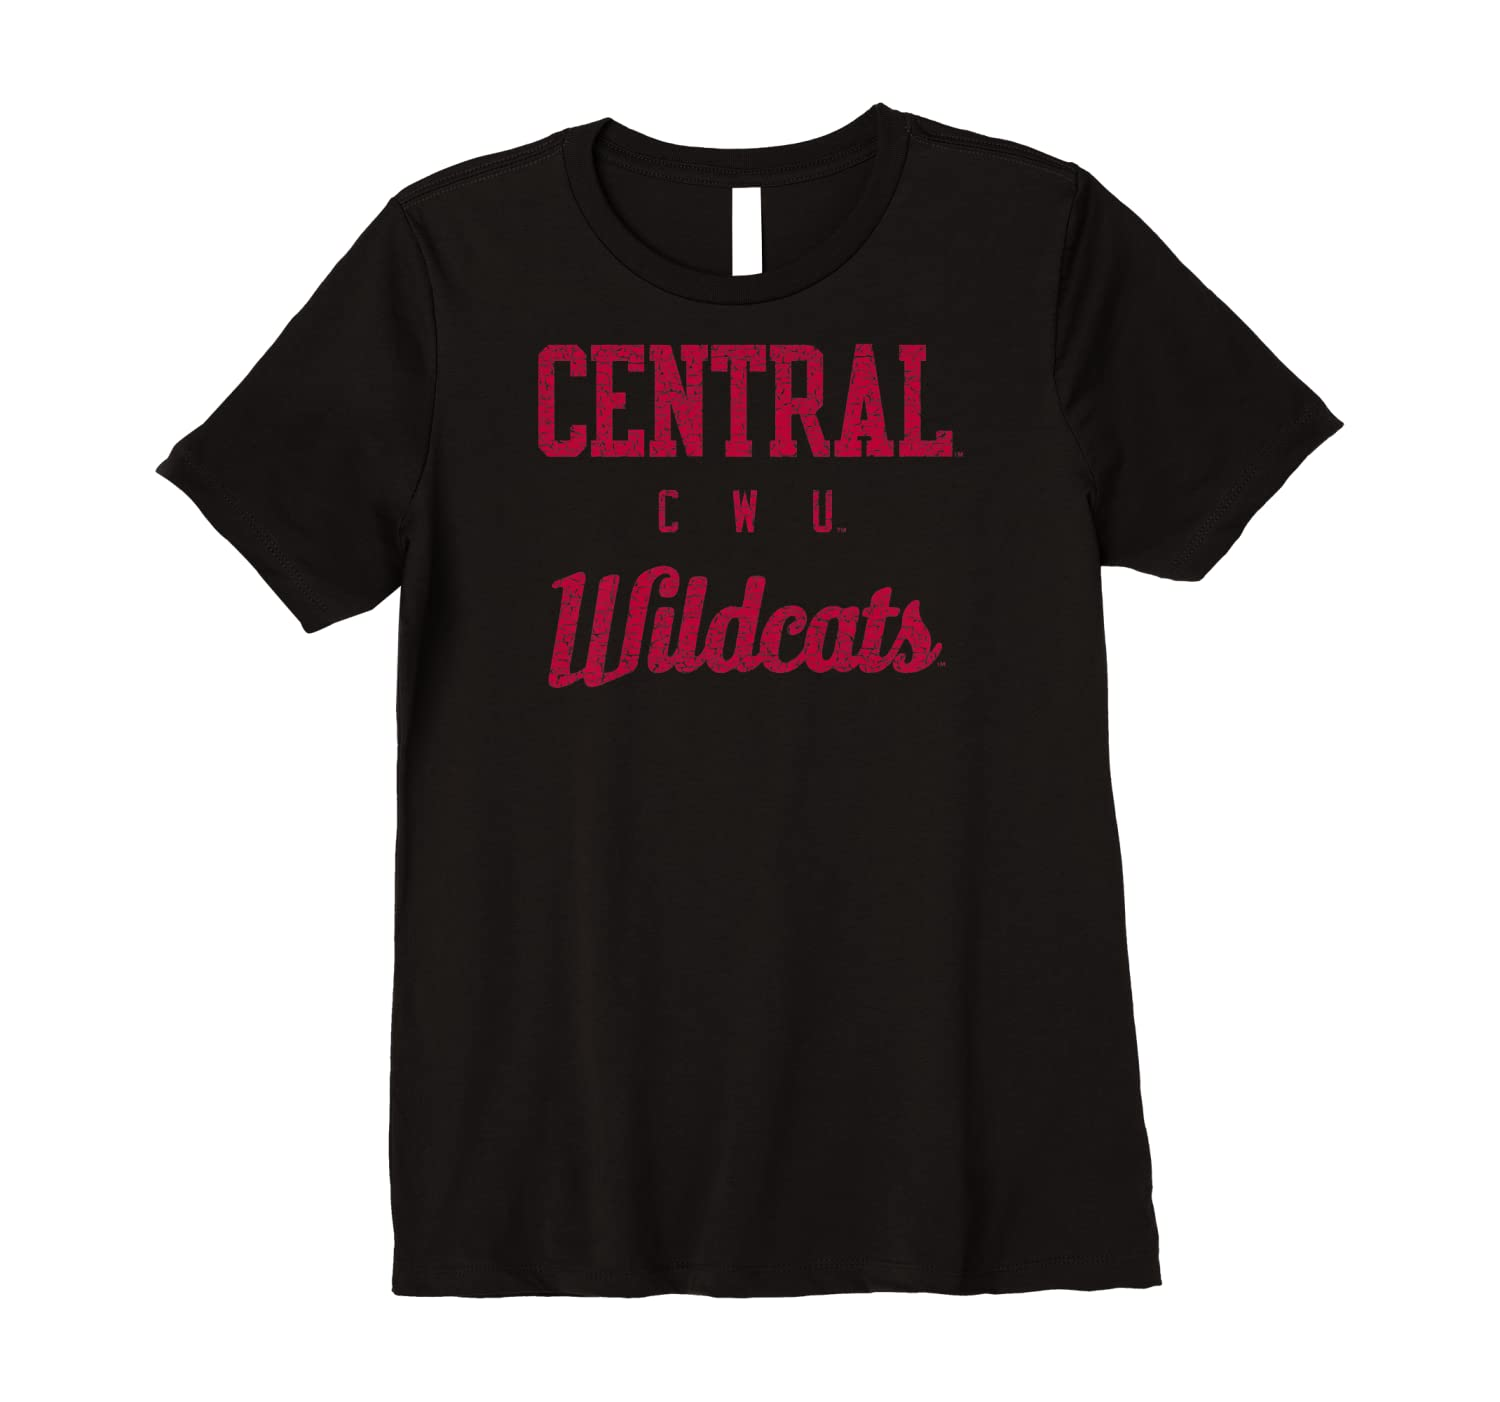 NCAA Central Washington Wildcats T-Shirt V3